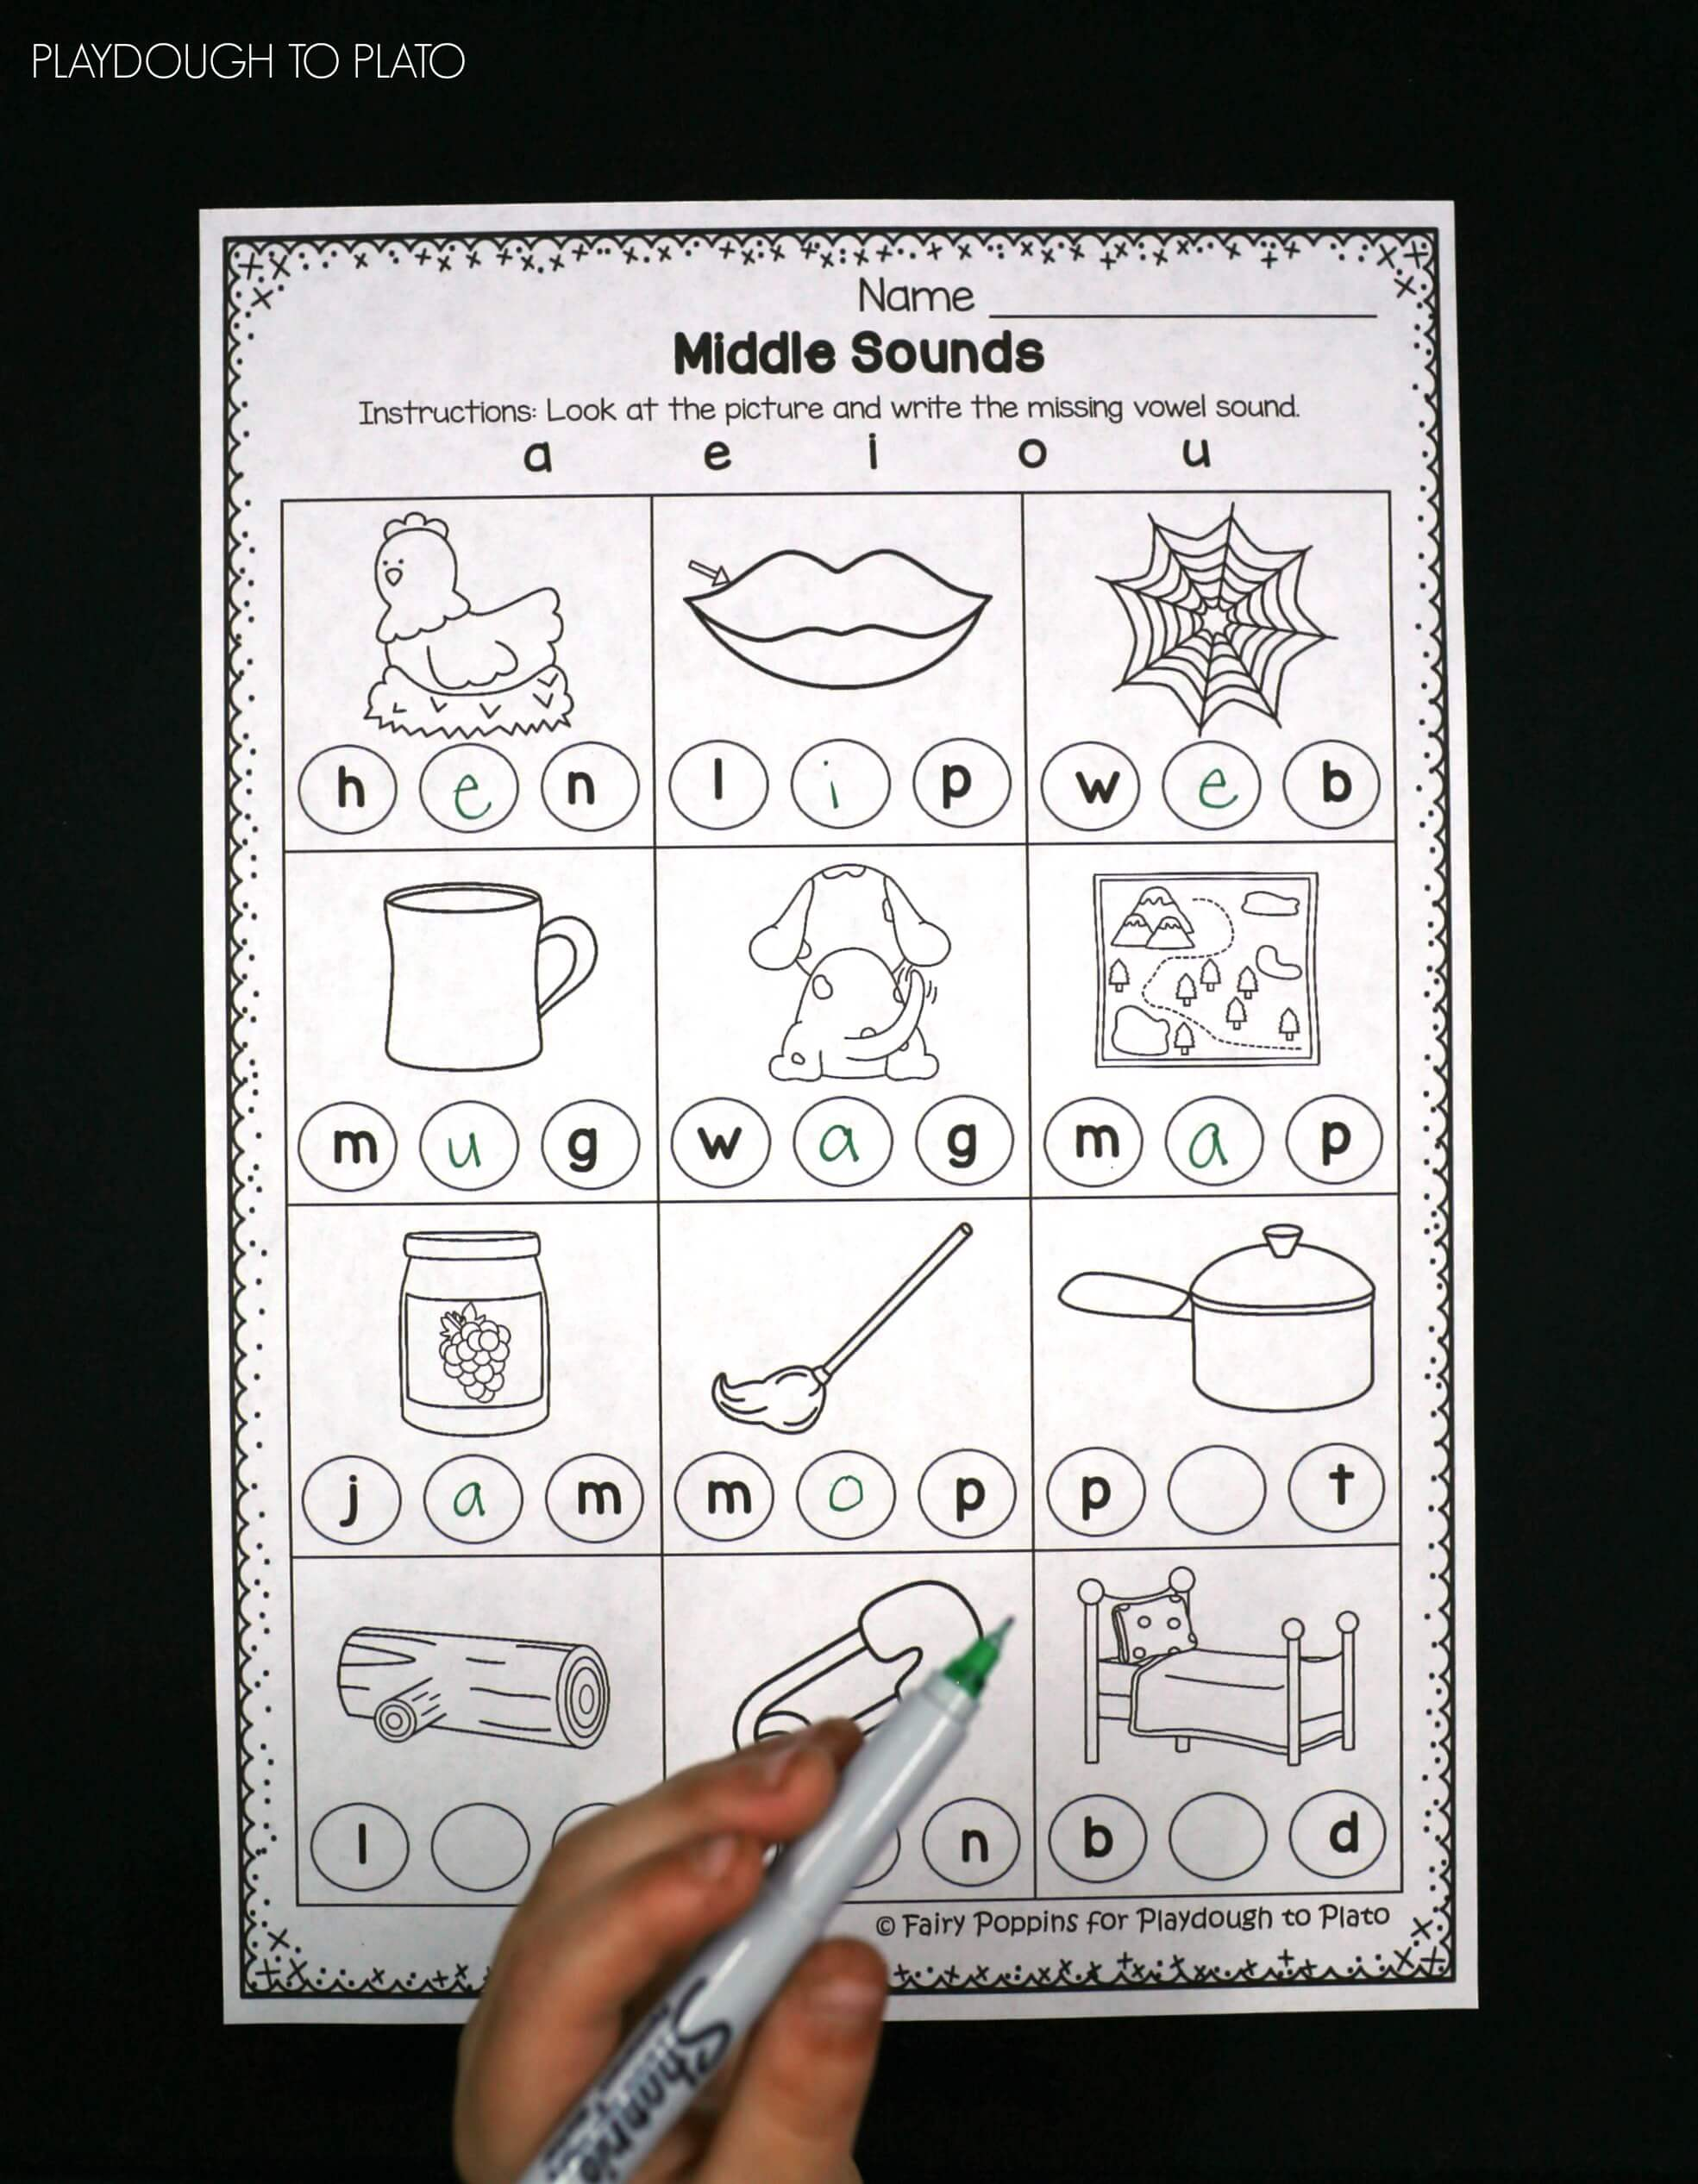 Middle Sounds Worksheets Playdough To Plato – Middle Sounds Worksheets